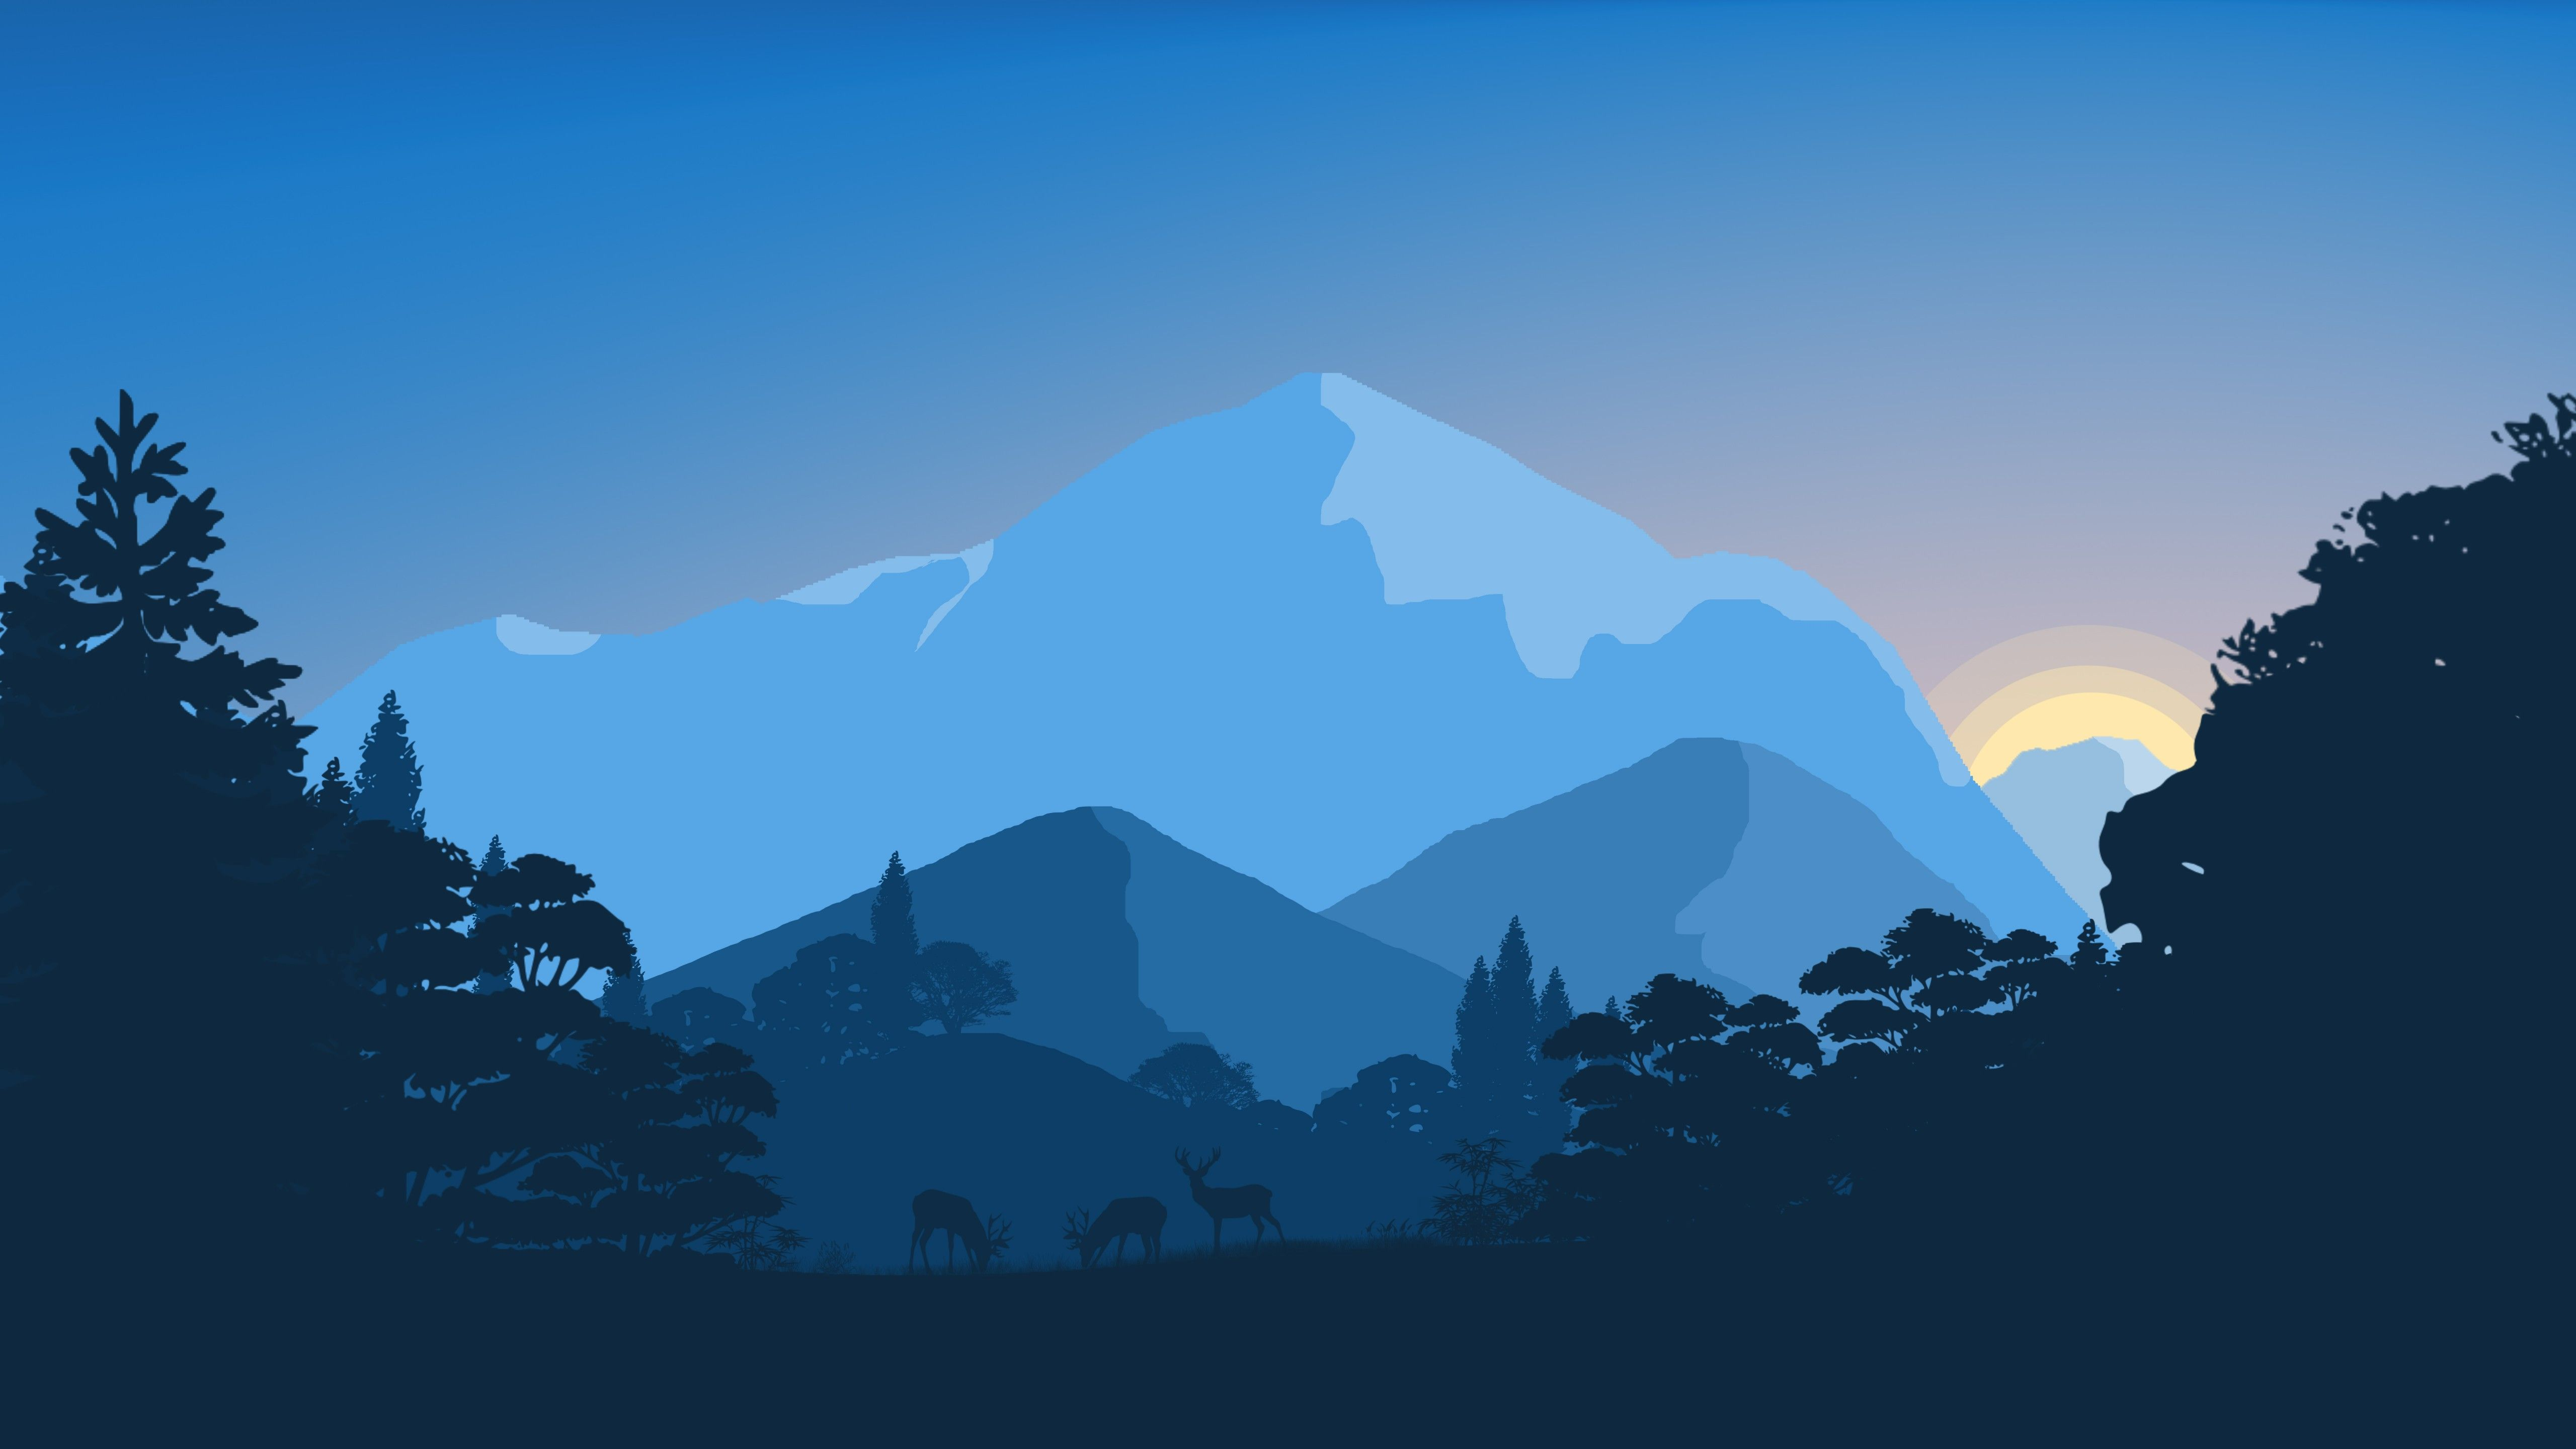 5120x2880 Wallpaper Sunset, Forest, Minimal, 4K, 8K, Nature, #5165